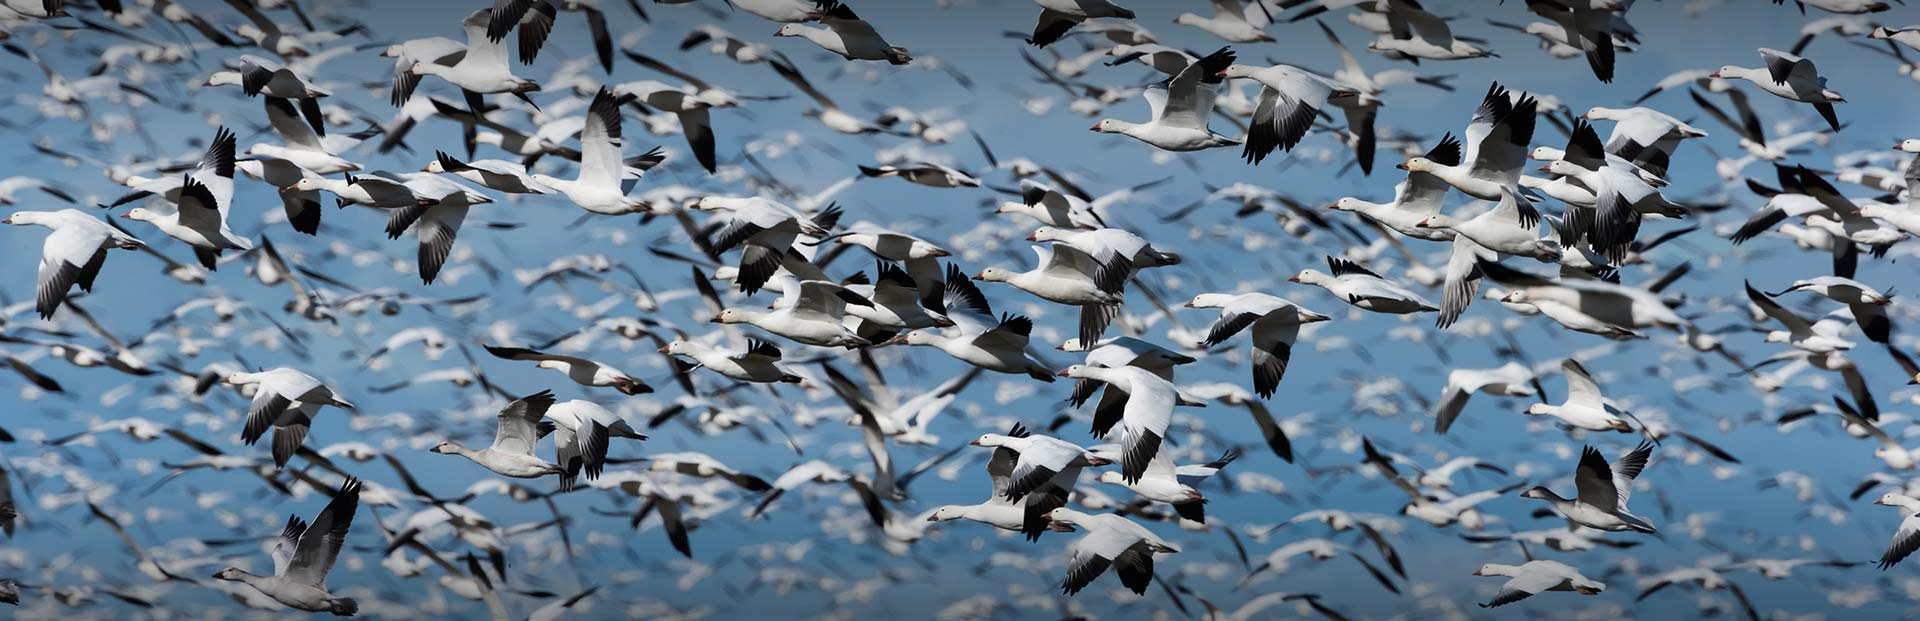 Missouri Snow Goose Hunting - Guided Snow Goose Hunts